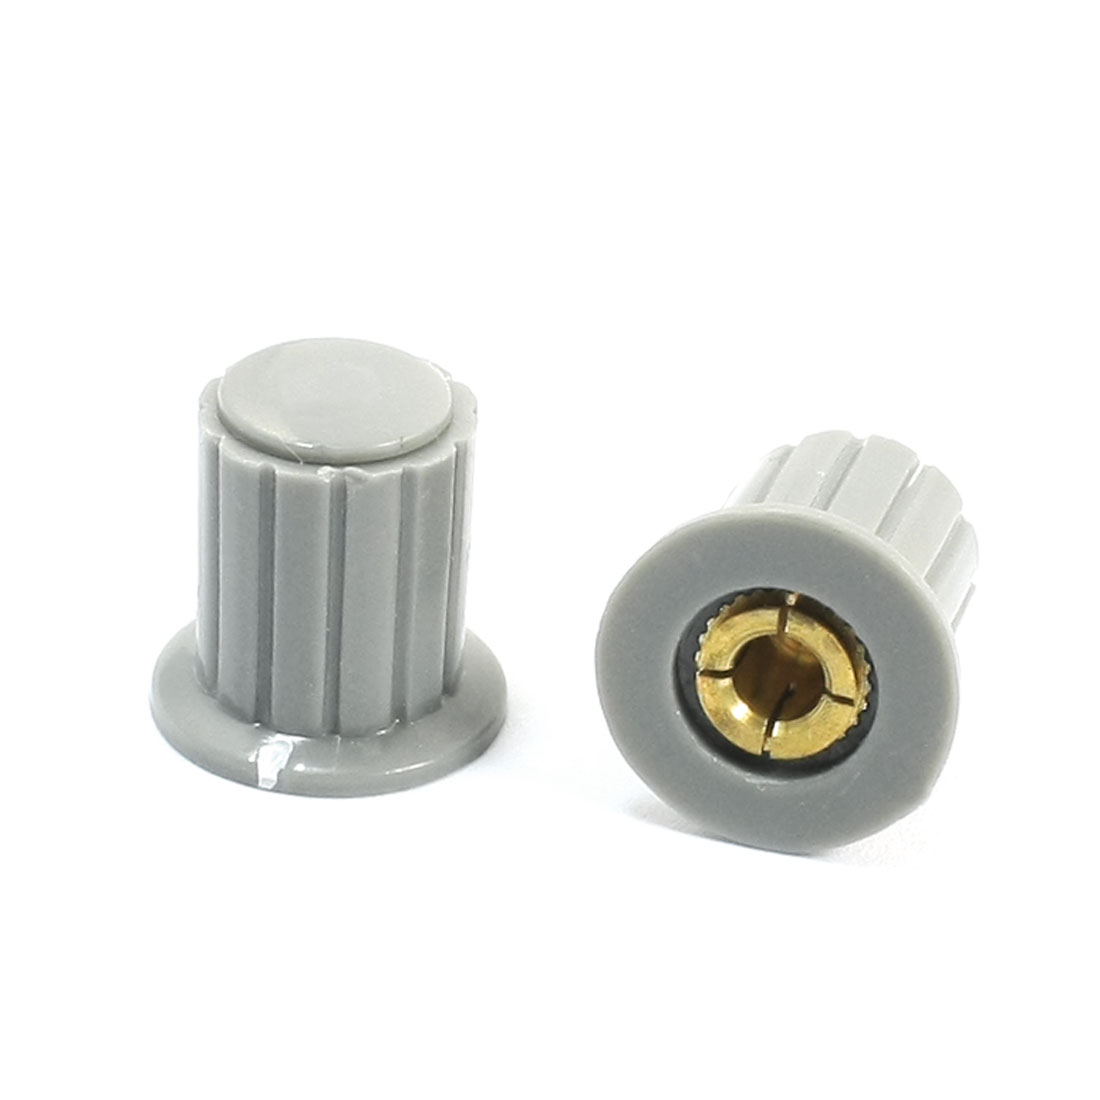 2pcs Ribbed Grip 4mm Split Shaft Volume Knob KYP16-16-4 for Potentiometer Pot